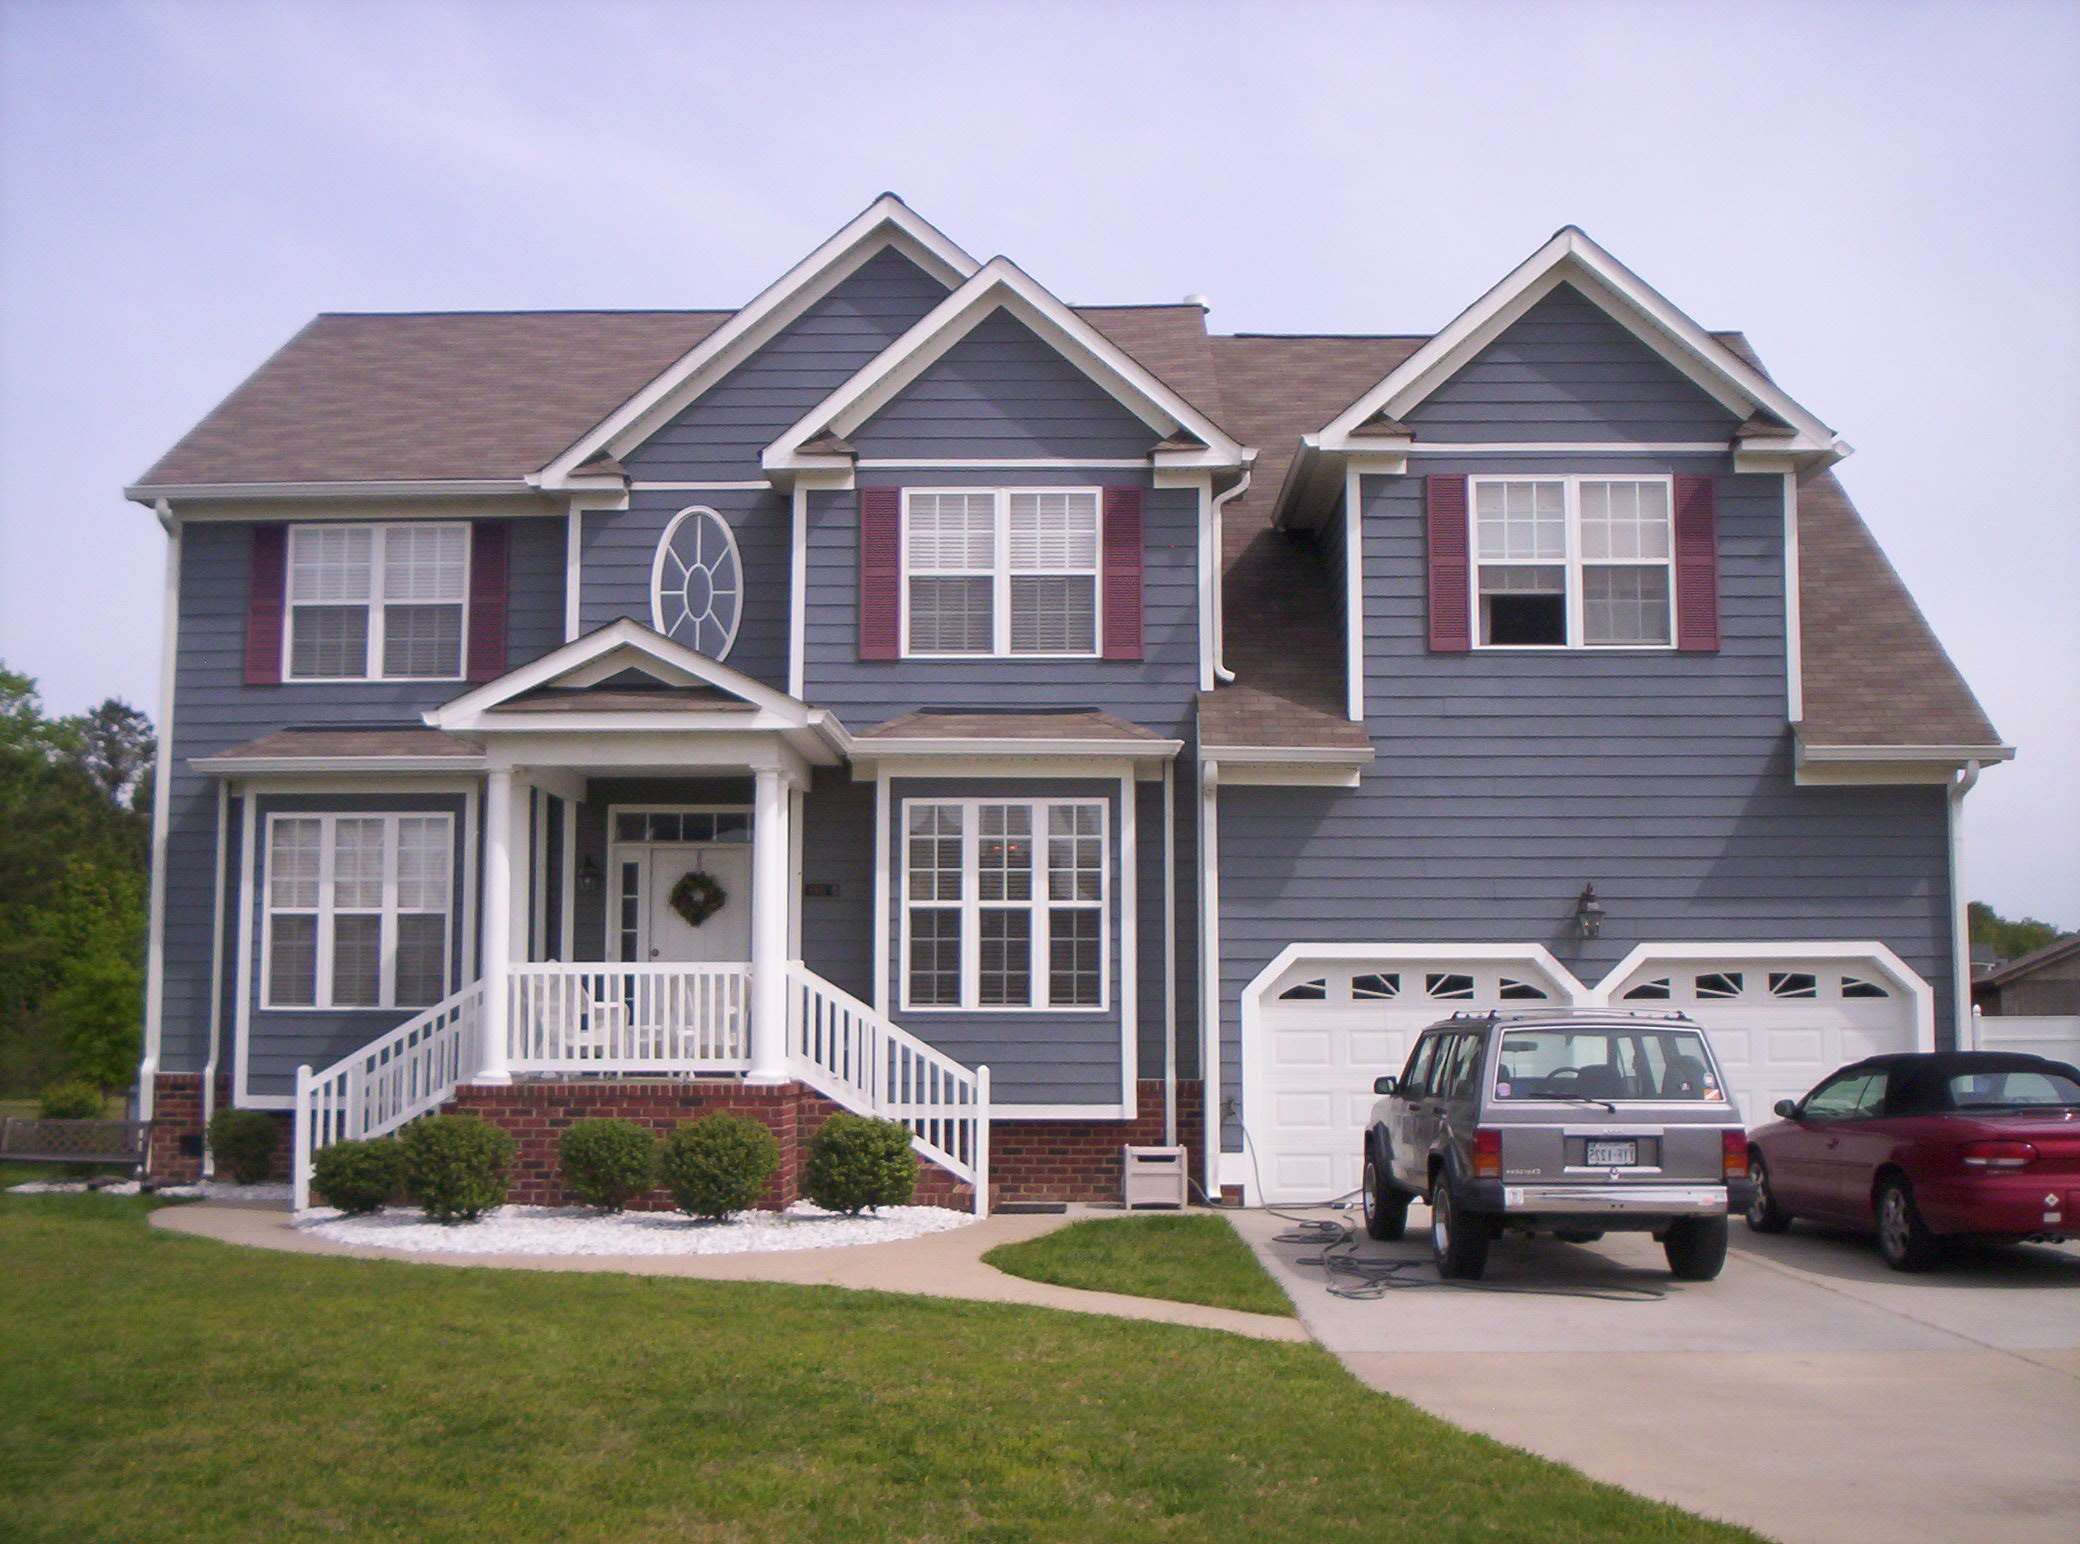 Gray House Exterior Paint Color (View 5 of 12)